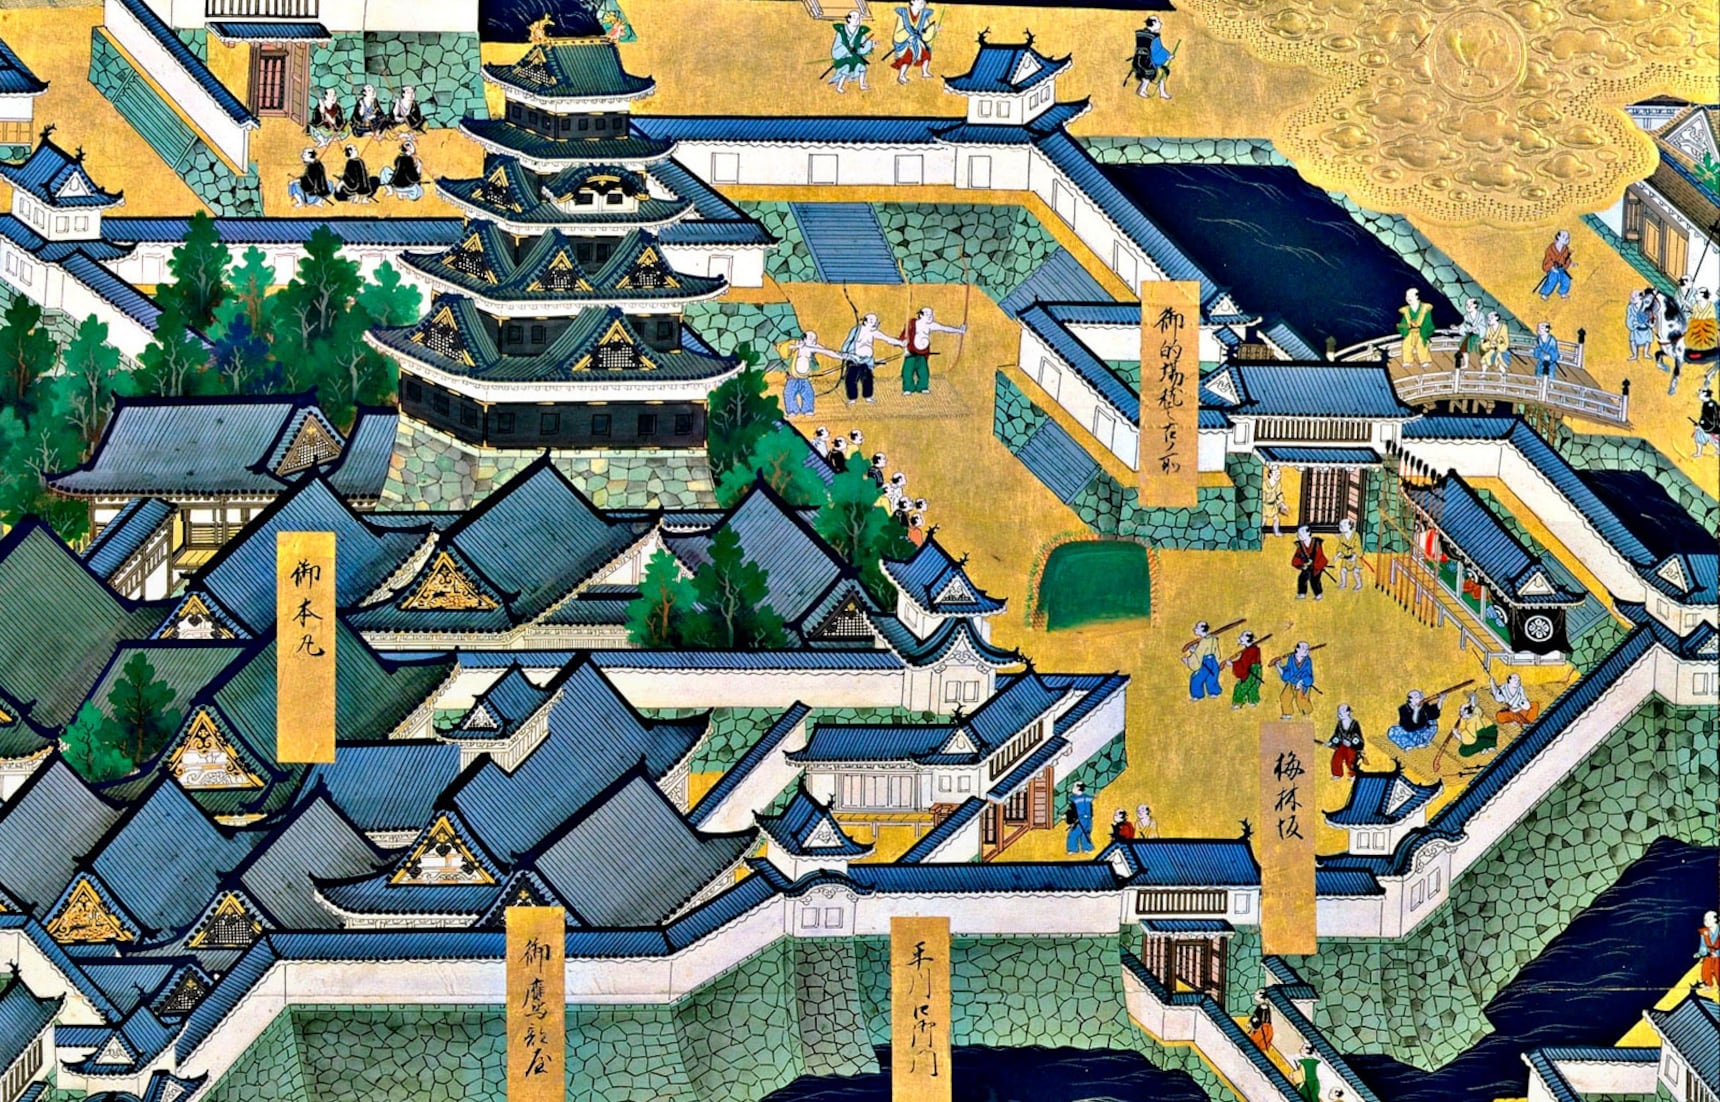 7 Incredible Events at Japanese Castles